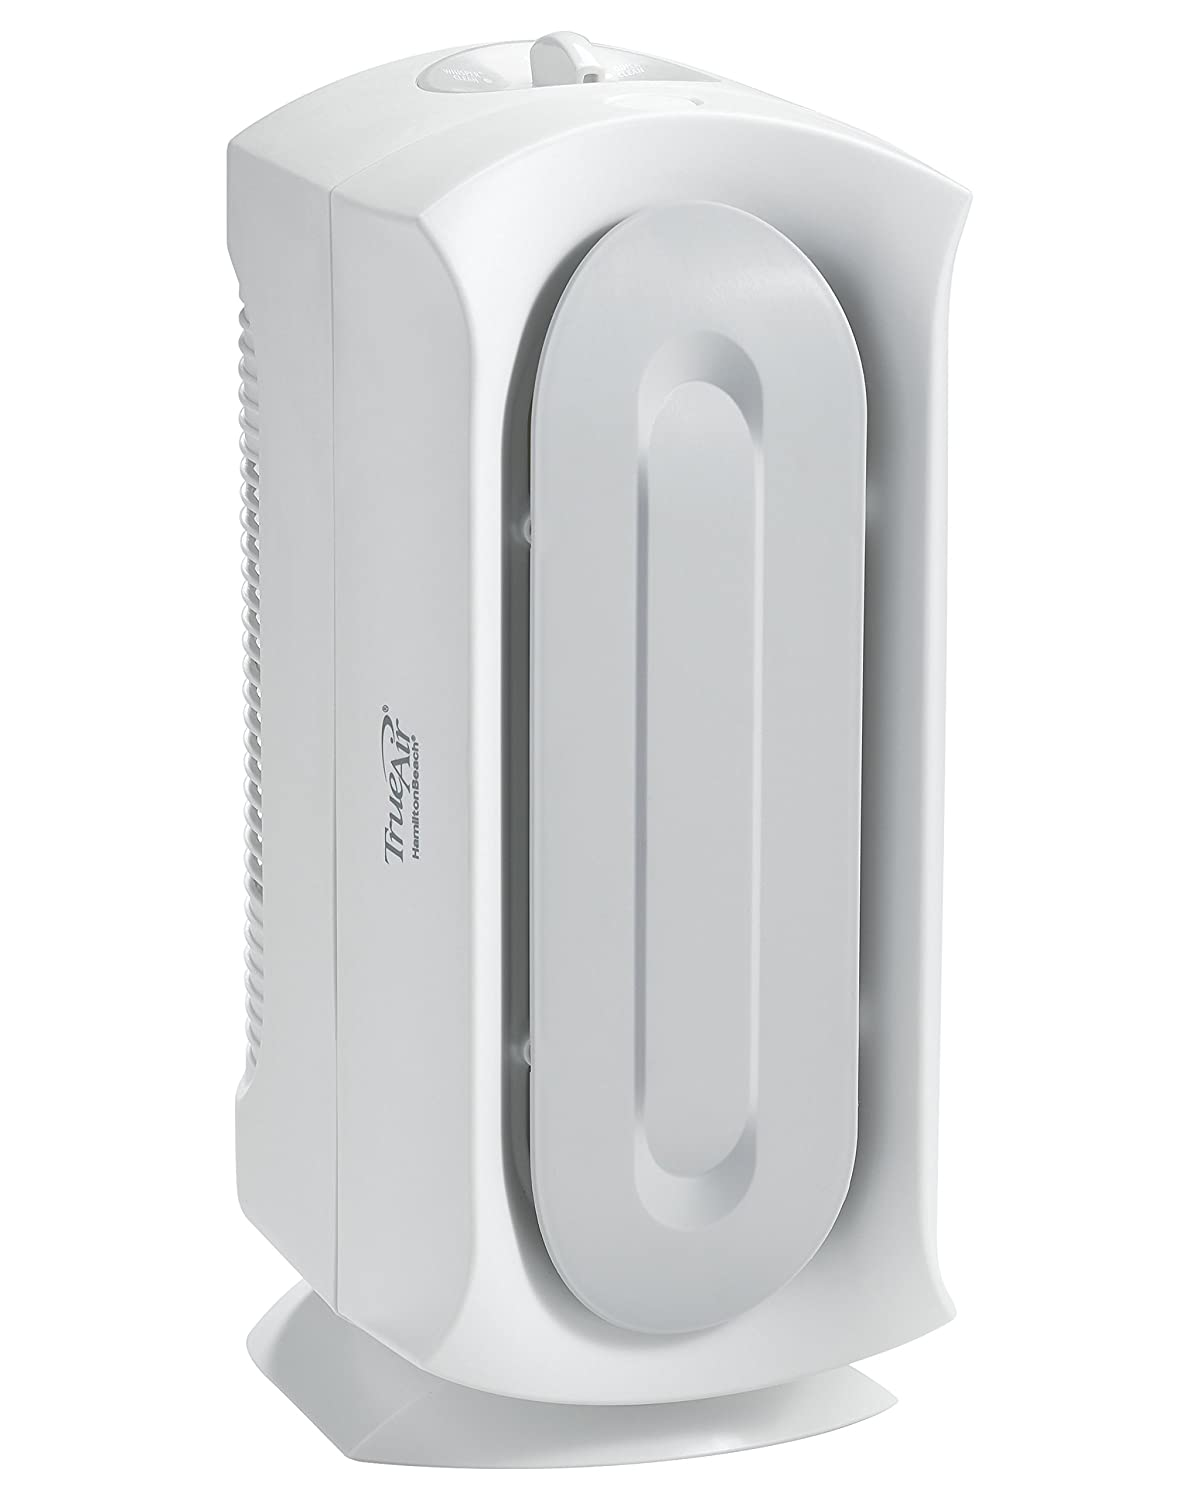 Hamilton Beach 04383 Air Purifier White